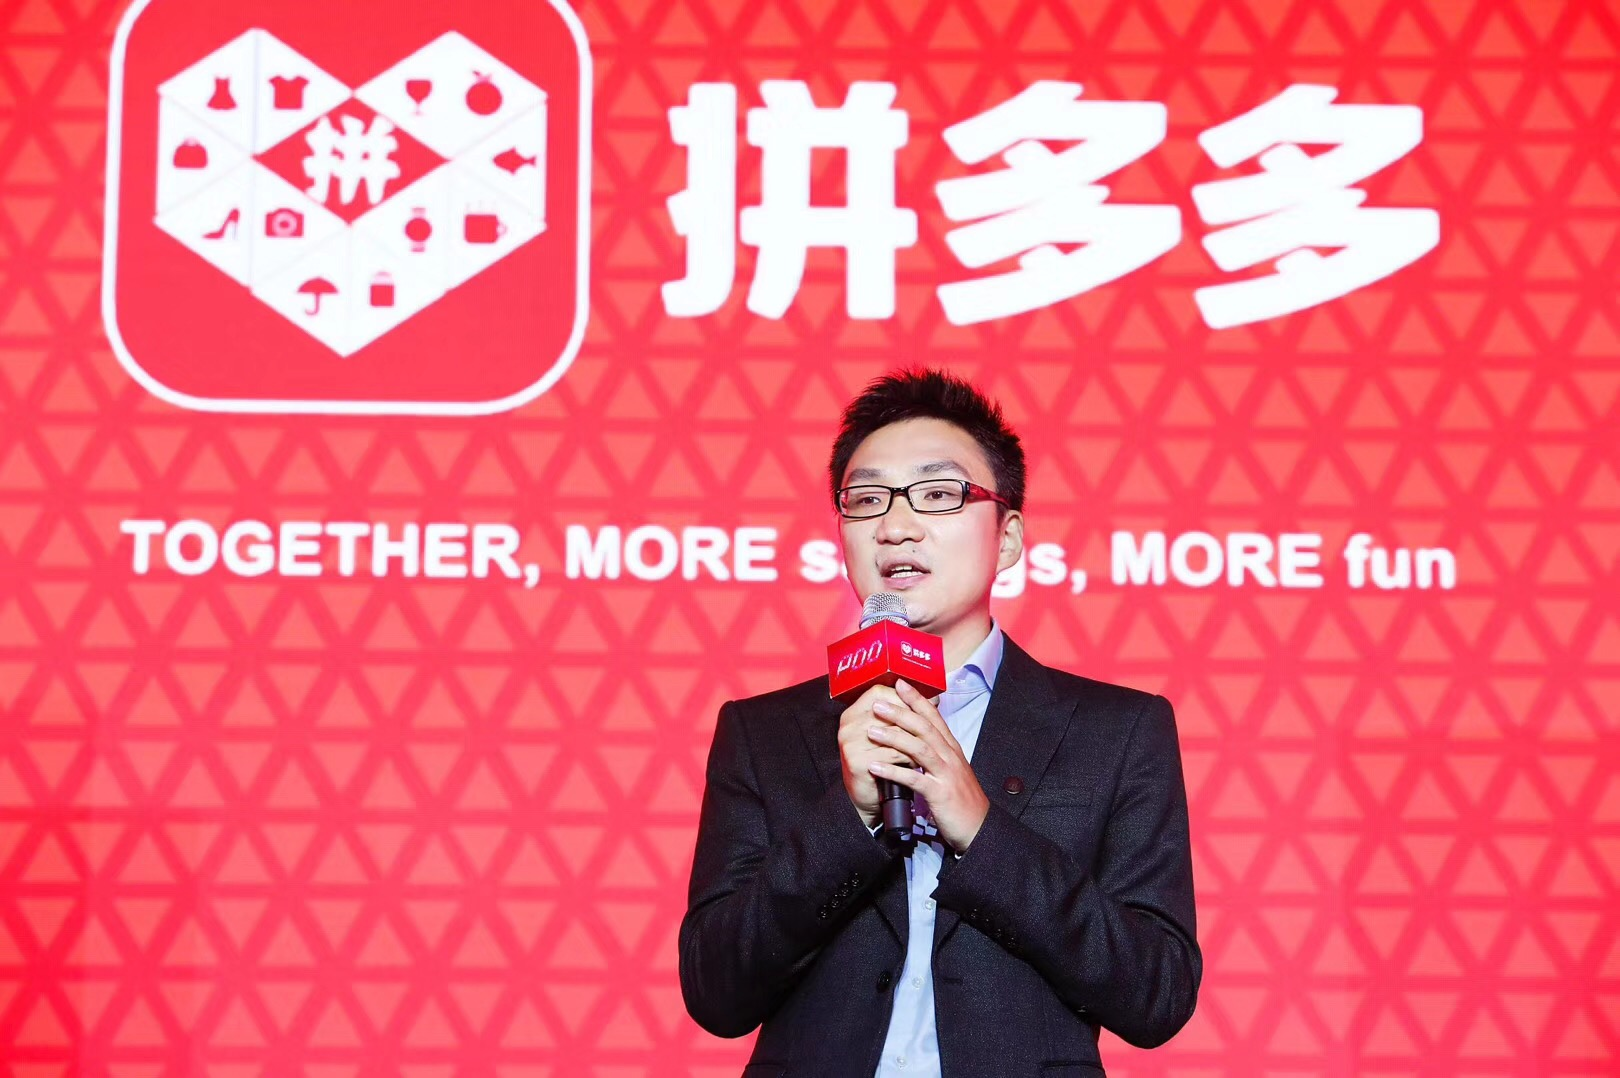 In rambling letter to investors, Pinduoduo founder predicts new market order with his company as the leader